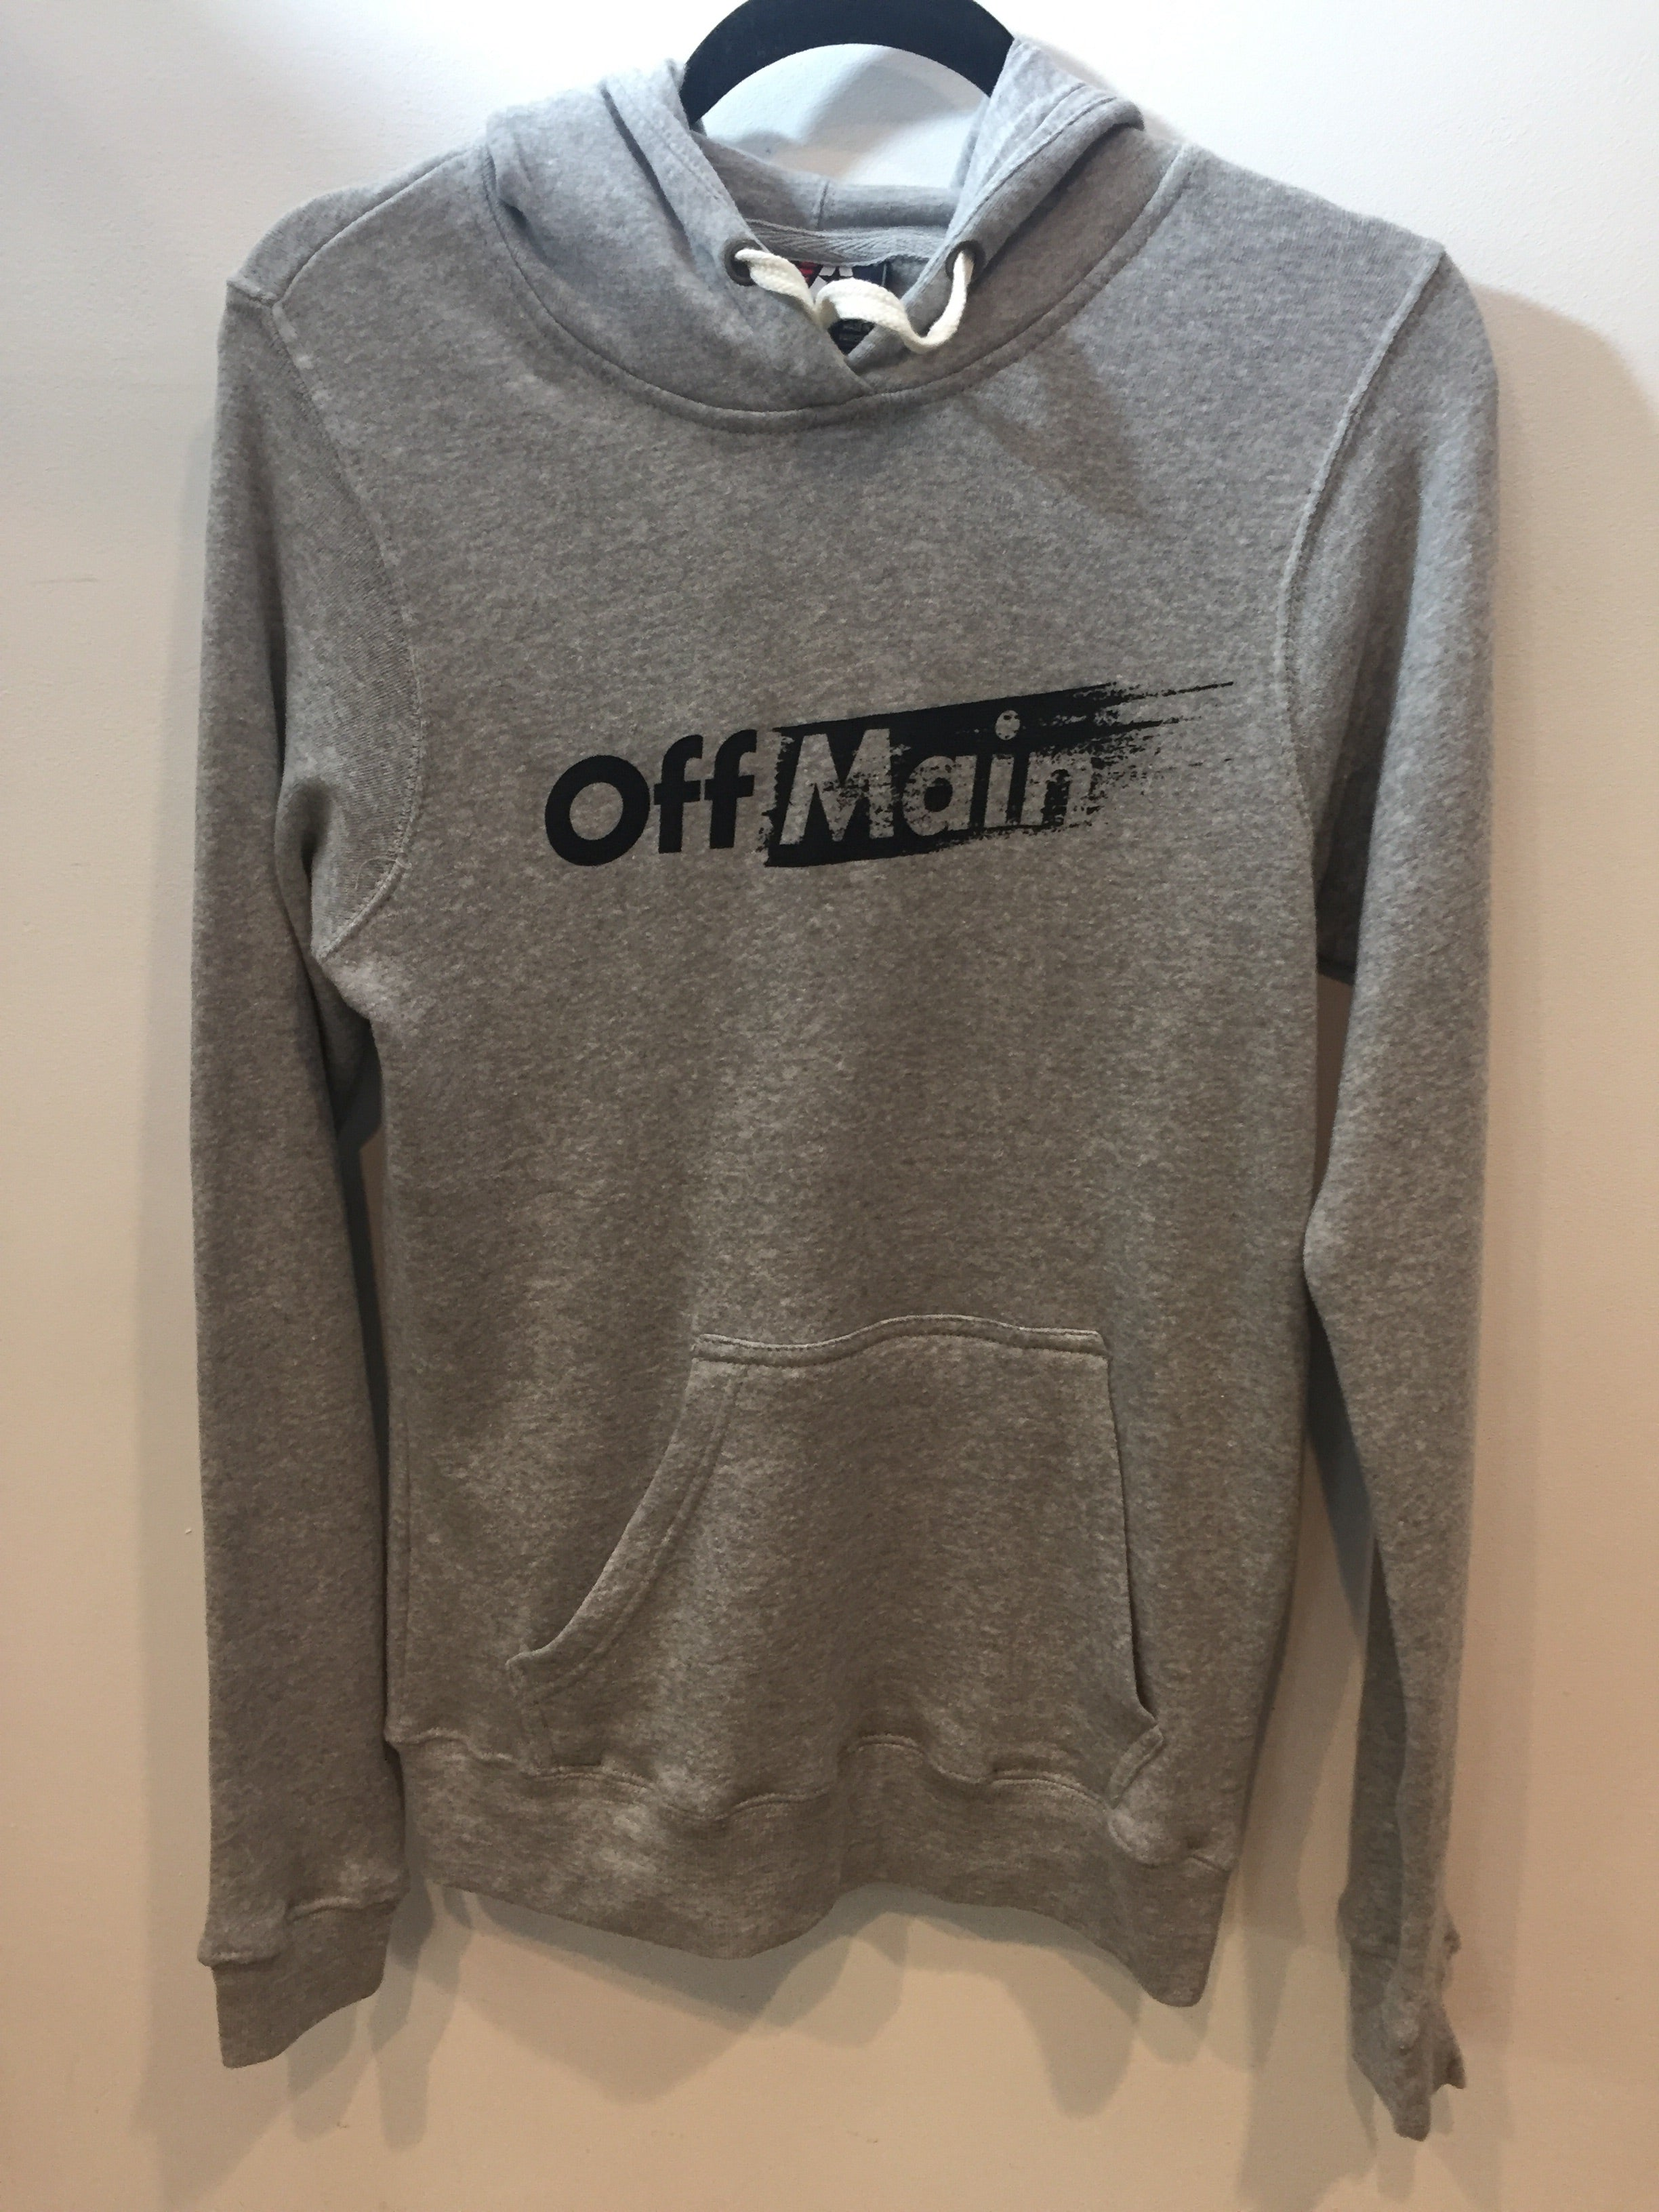 OffMain - Hoodie - Gray